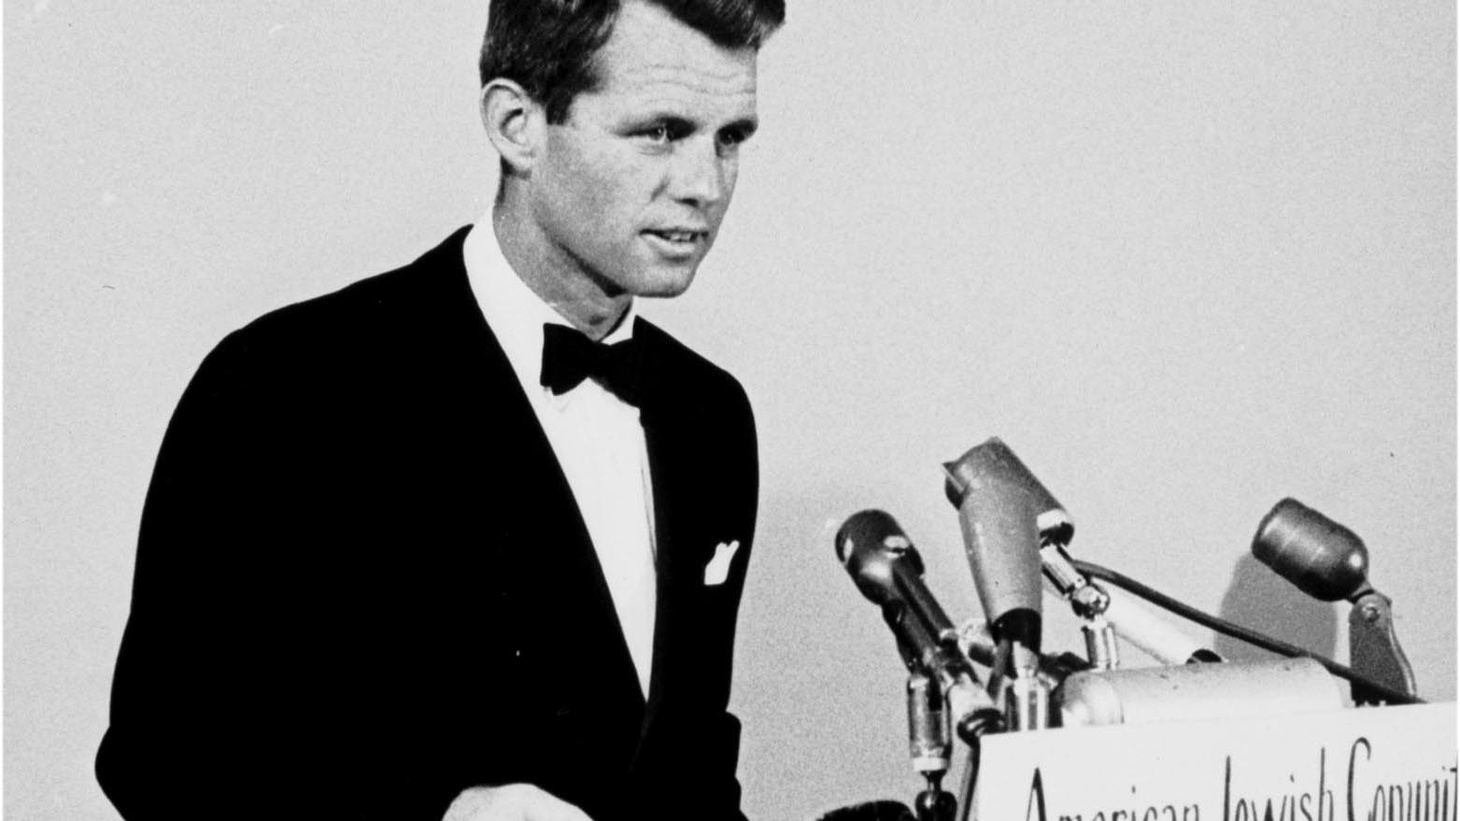 It's primary day in California. Fifty years ago, primary day changed U.S. history. Robert F. Kennedy won the California primary for president. He was on his way to clinching the Democratic nomination.